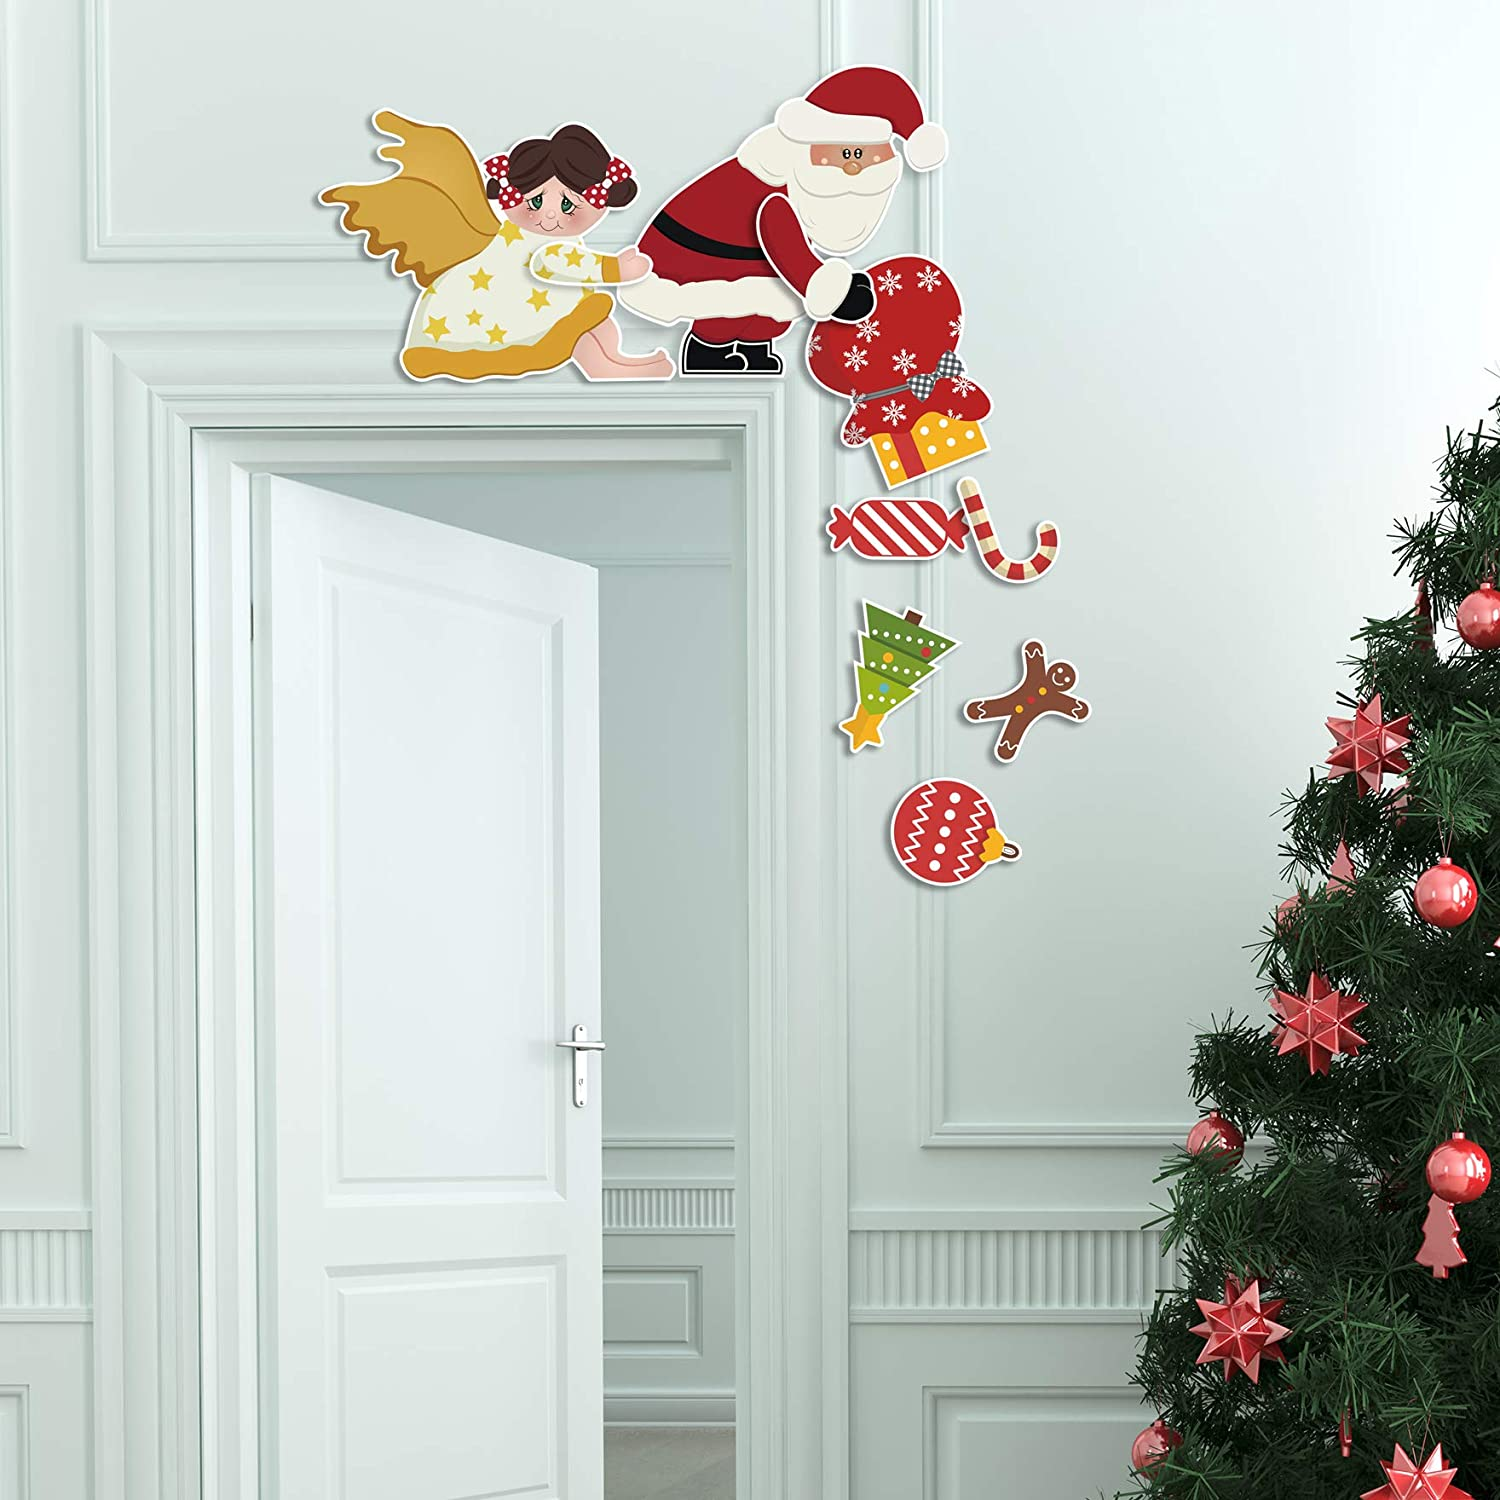 GEGEWOO Christmas Santa and Angels Door Frames Decoration Lovely and Interesting Christmas Decor for Doors Windows and Walls Christmas Party Decoration Door DIY Craft Supplies